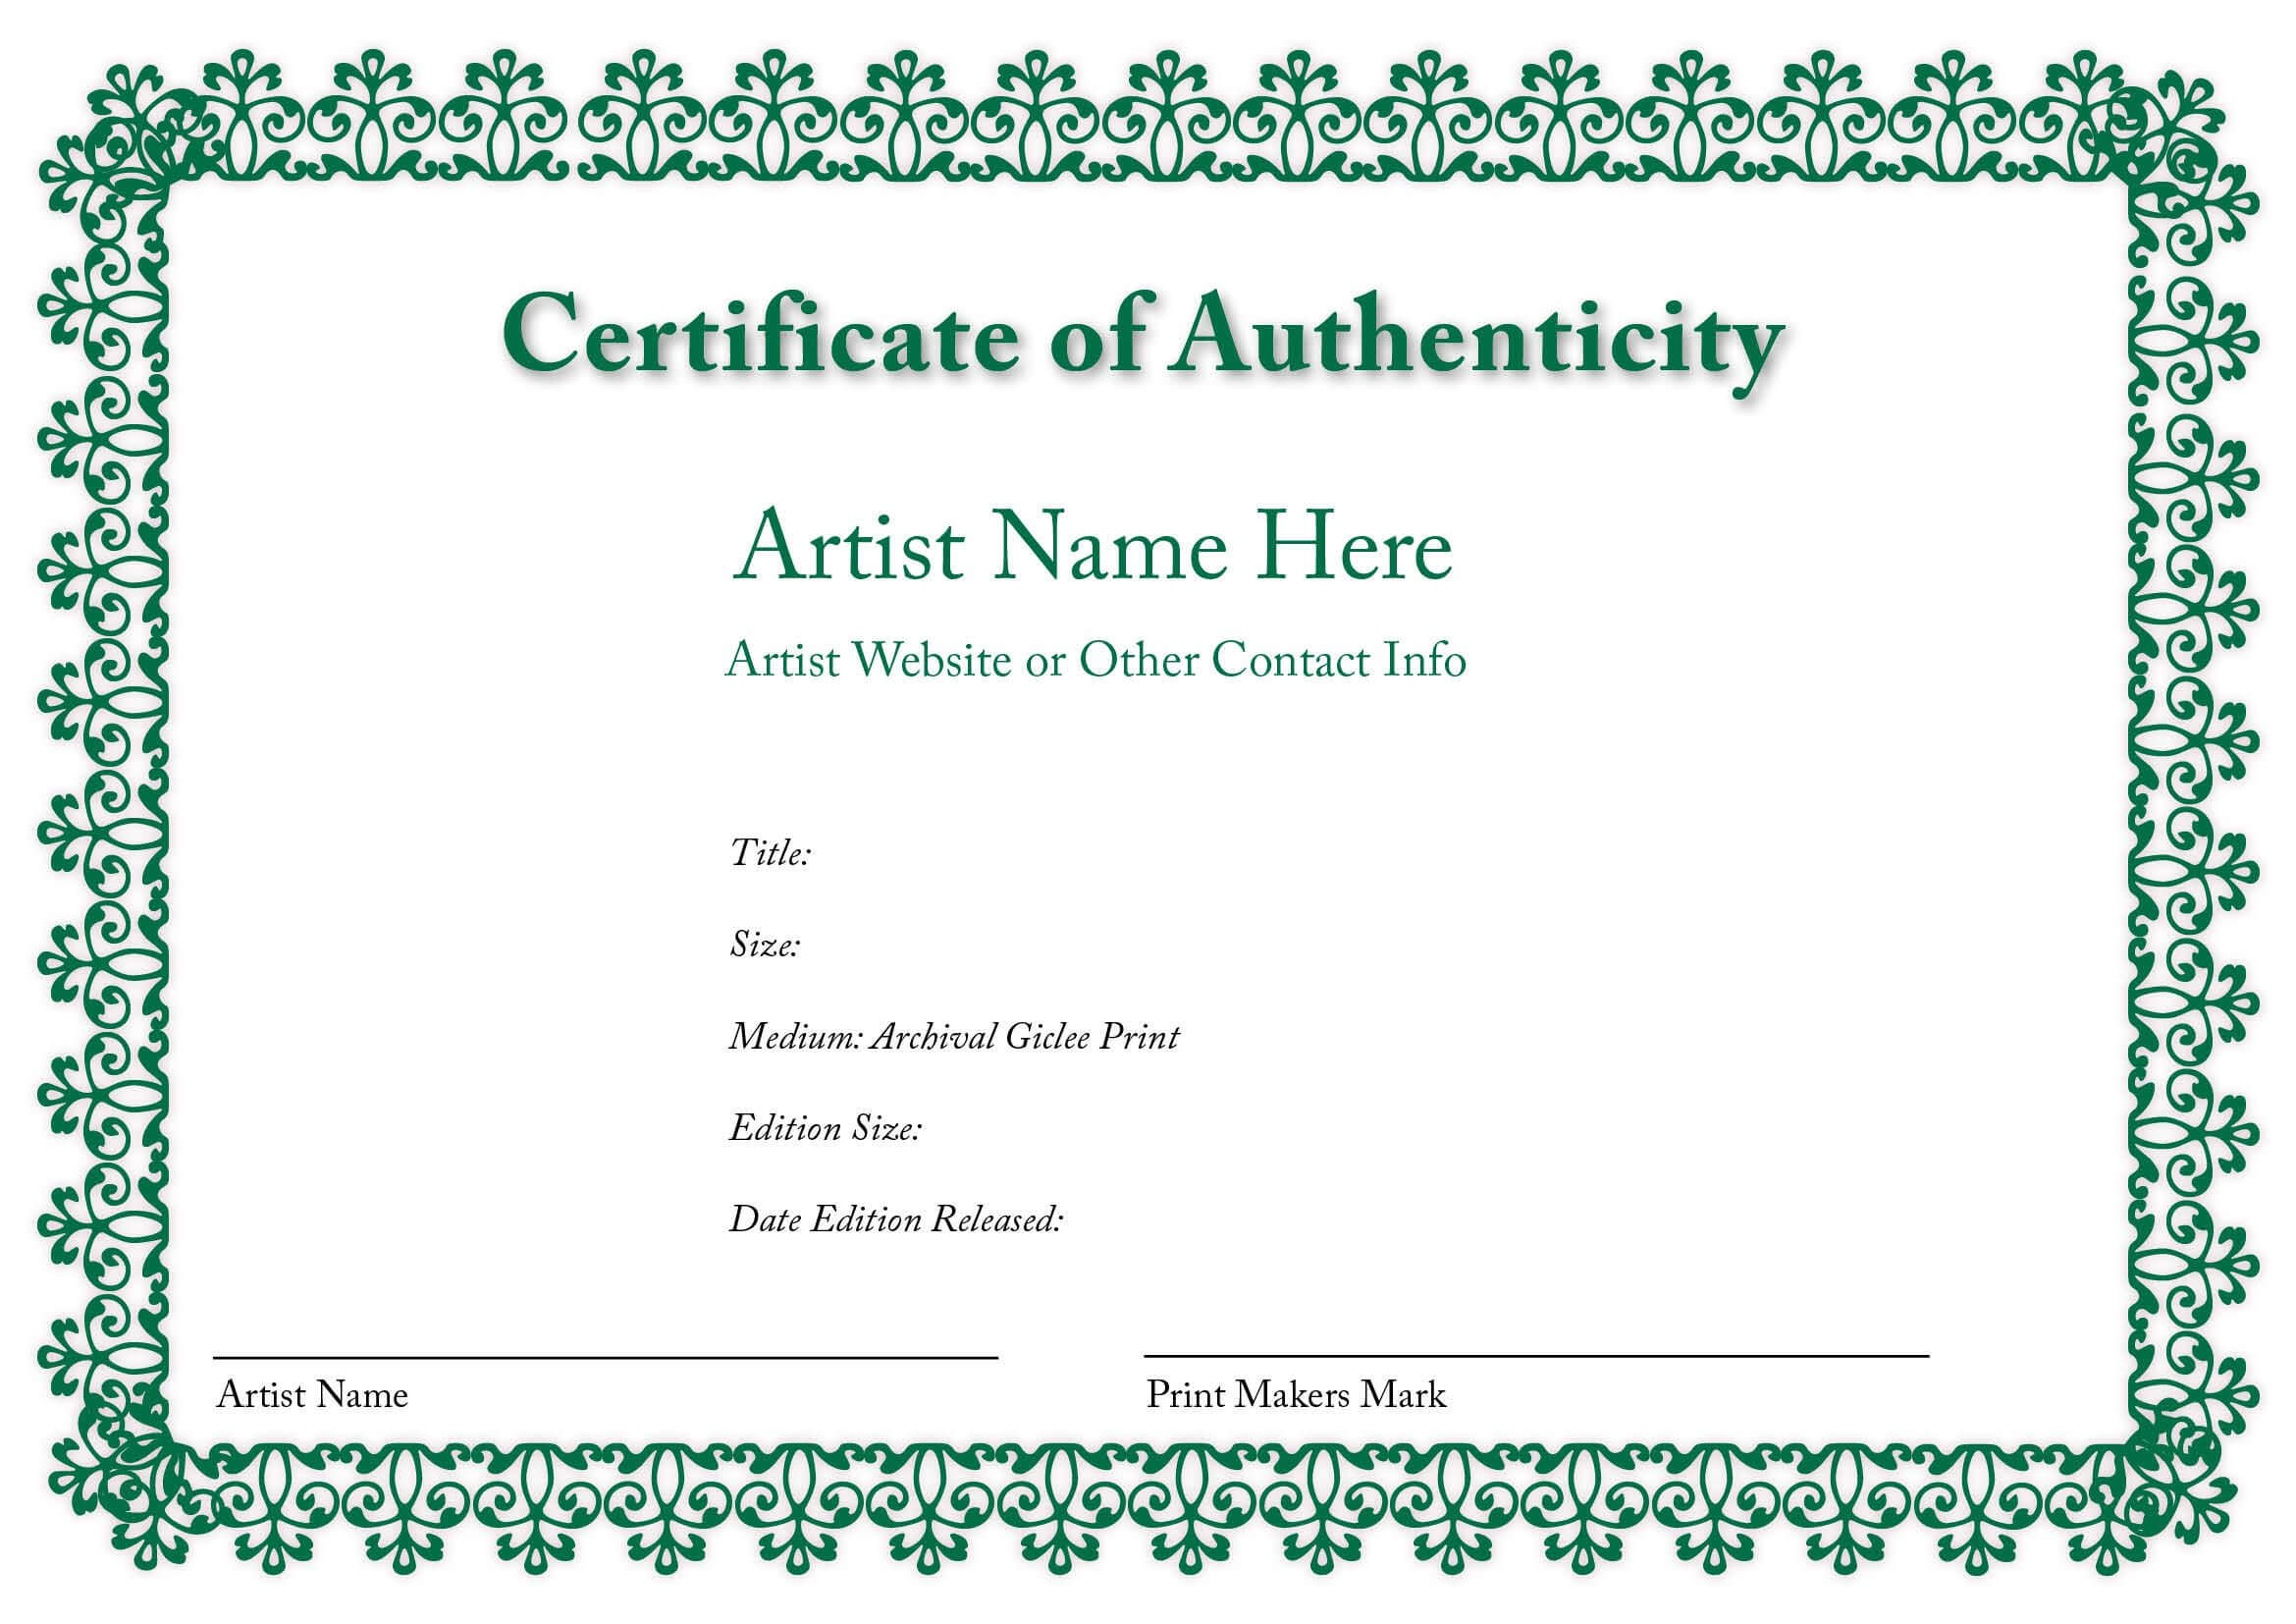 Certificate Of Authenticity Of An Art Print | Certificates Inside Certificate Of Authenticity Template